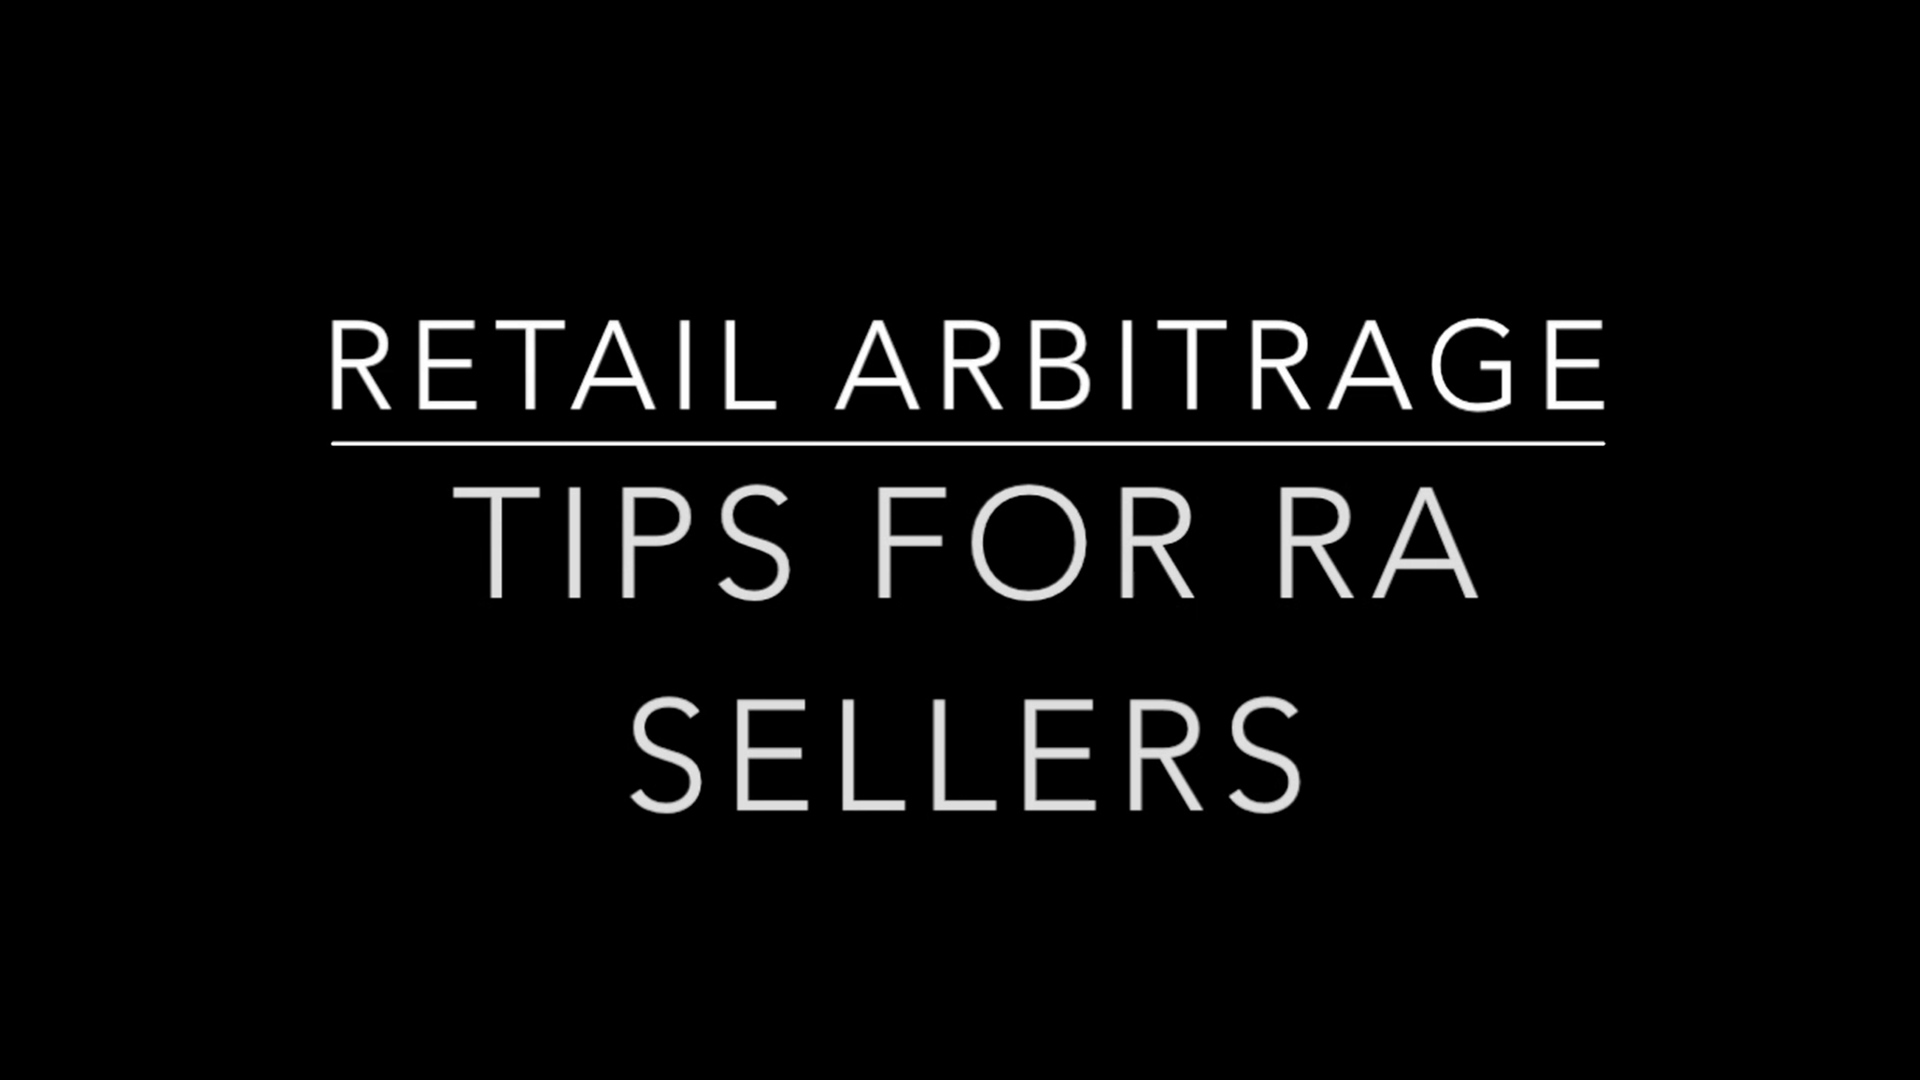 Retail Arbitrage - Tips for RA Sellers